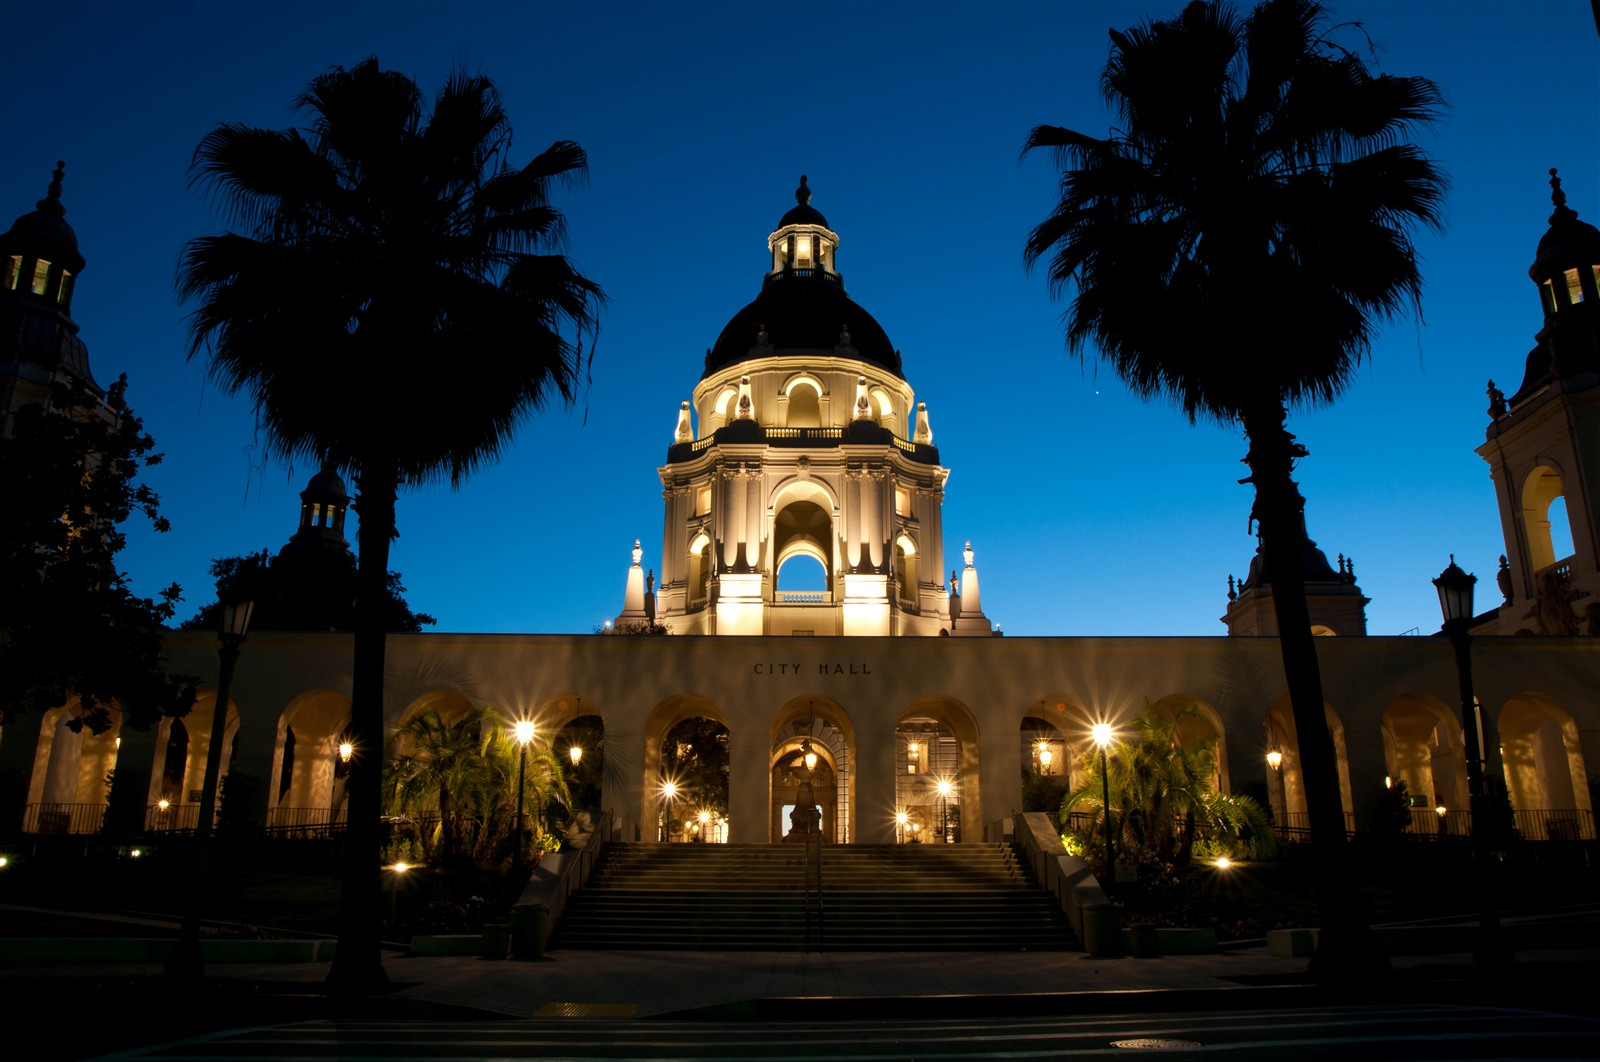 Pasadena City Hall (photo credit)